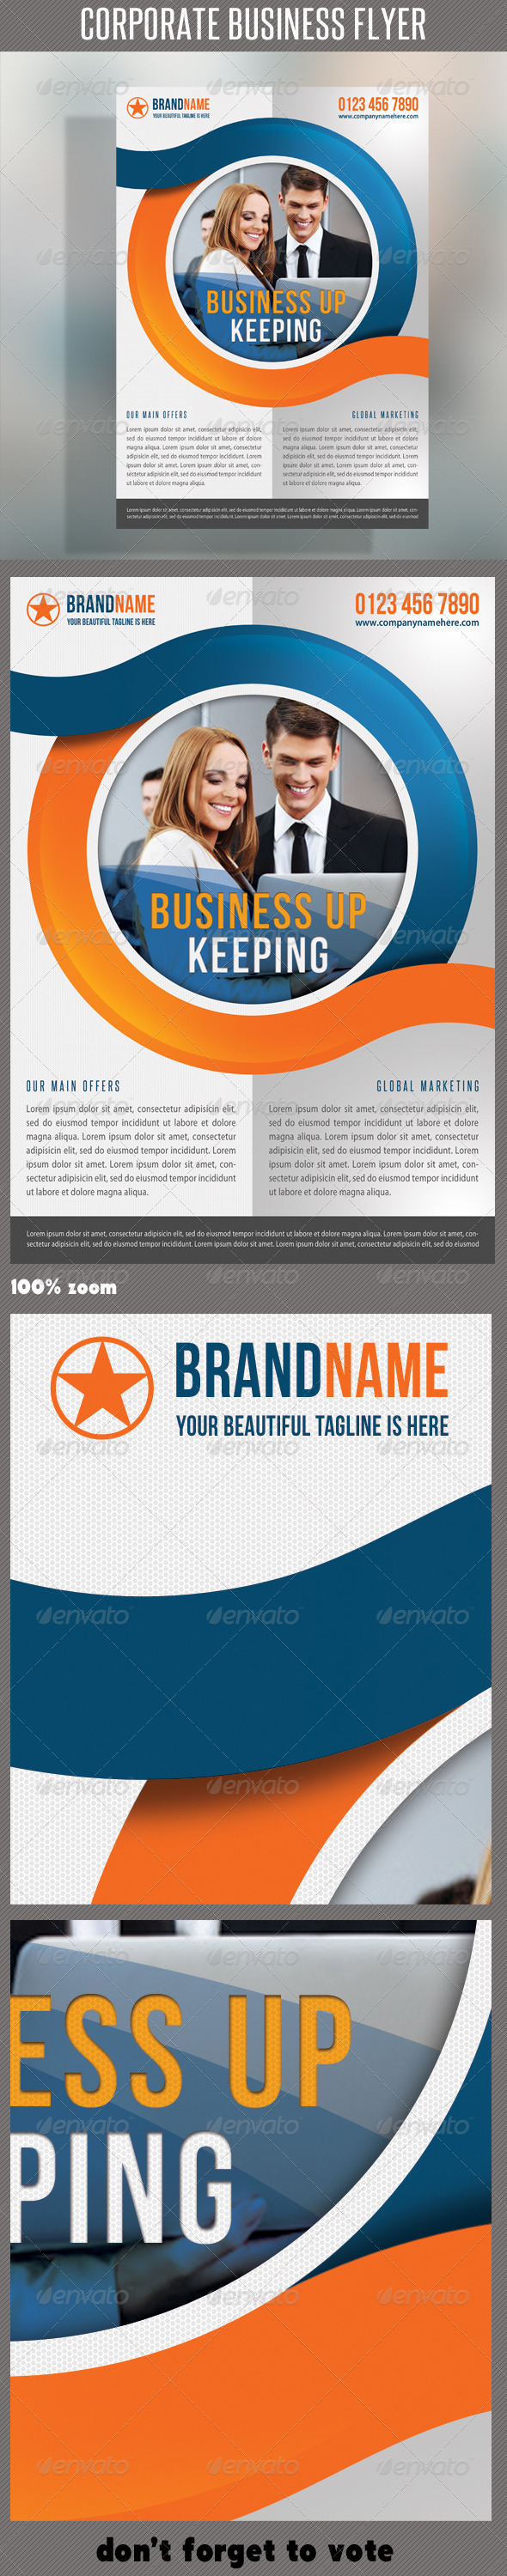 Corporate Product Flyer 53 - Corporate Flyers